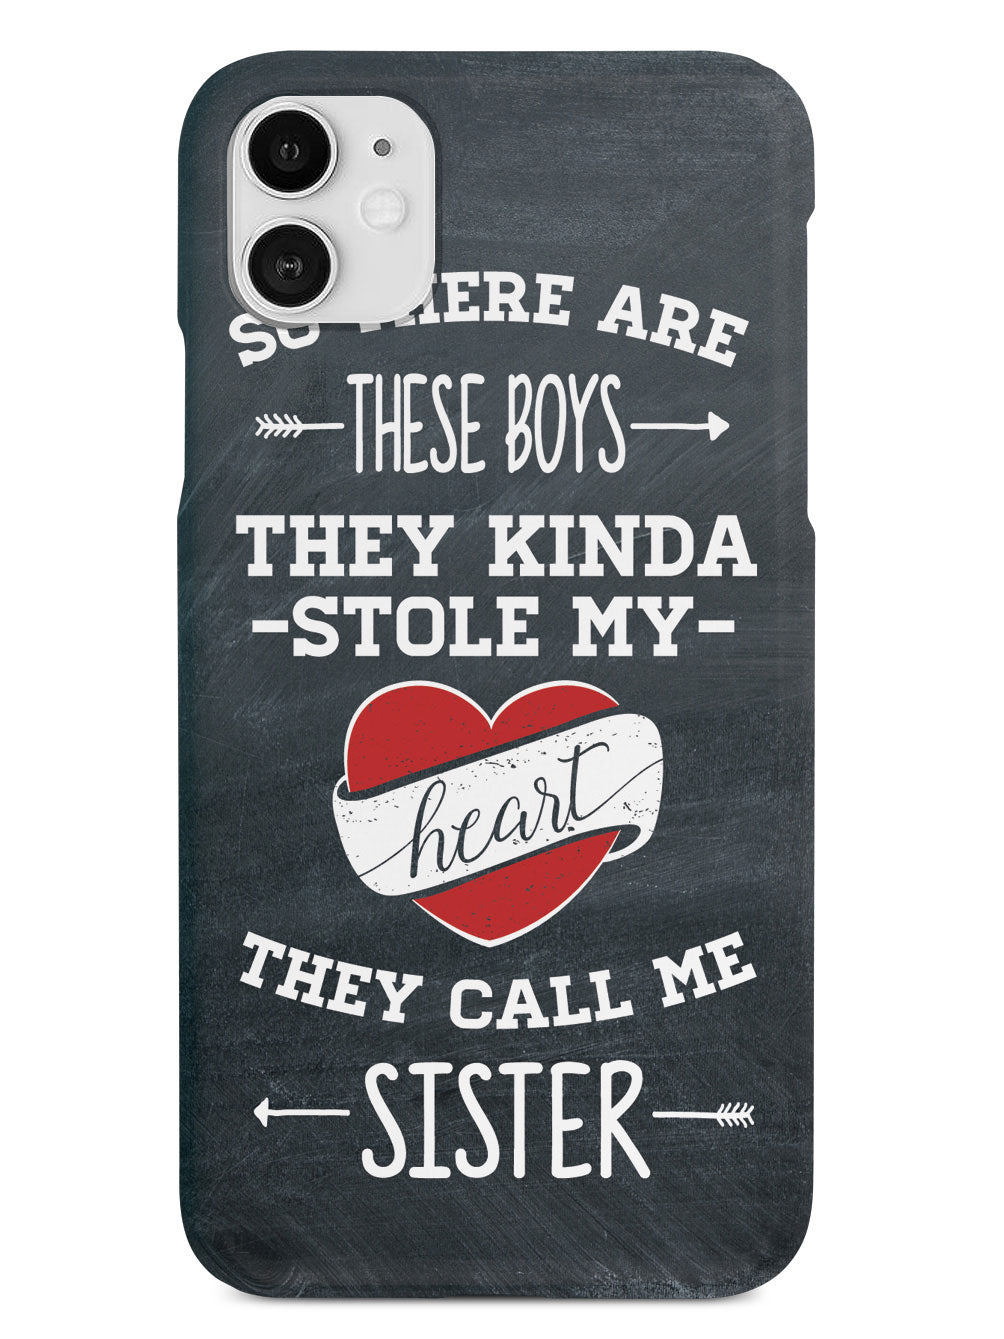 So There Are These Boys - Sister Case